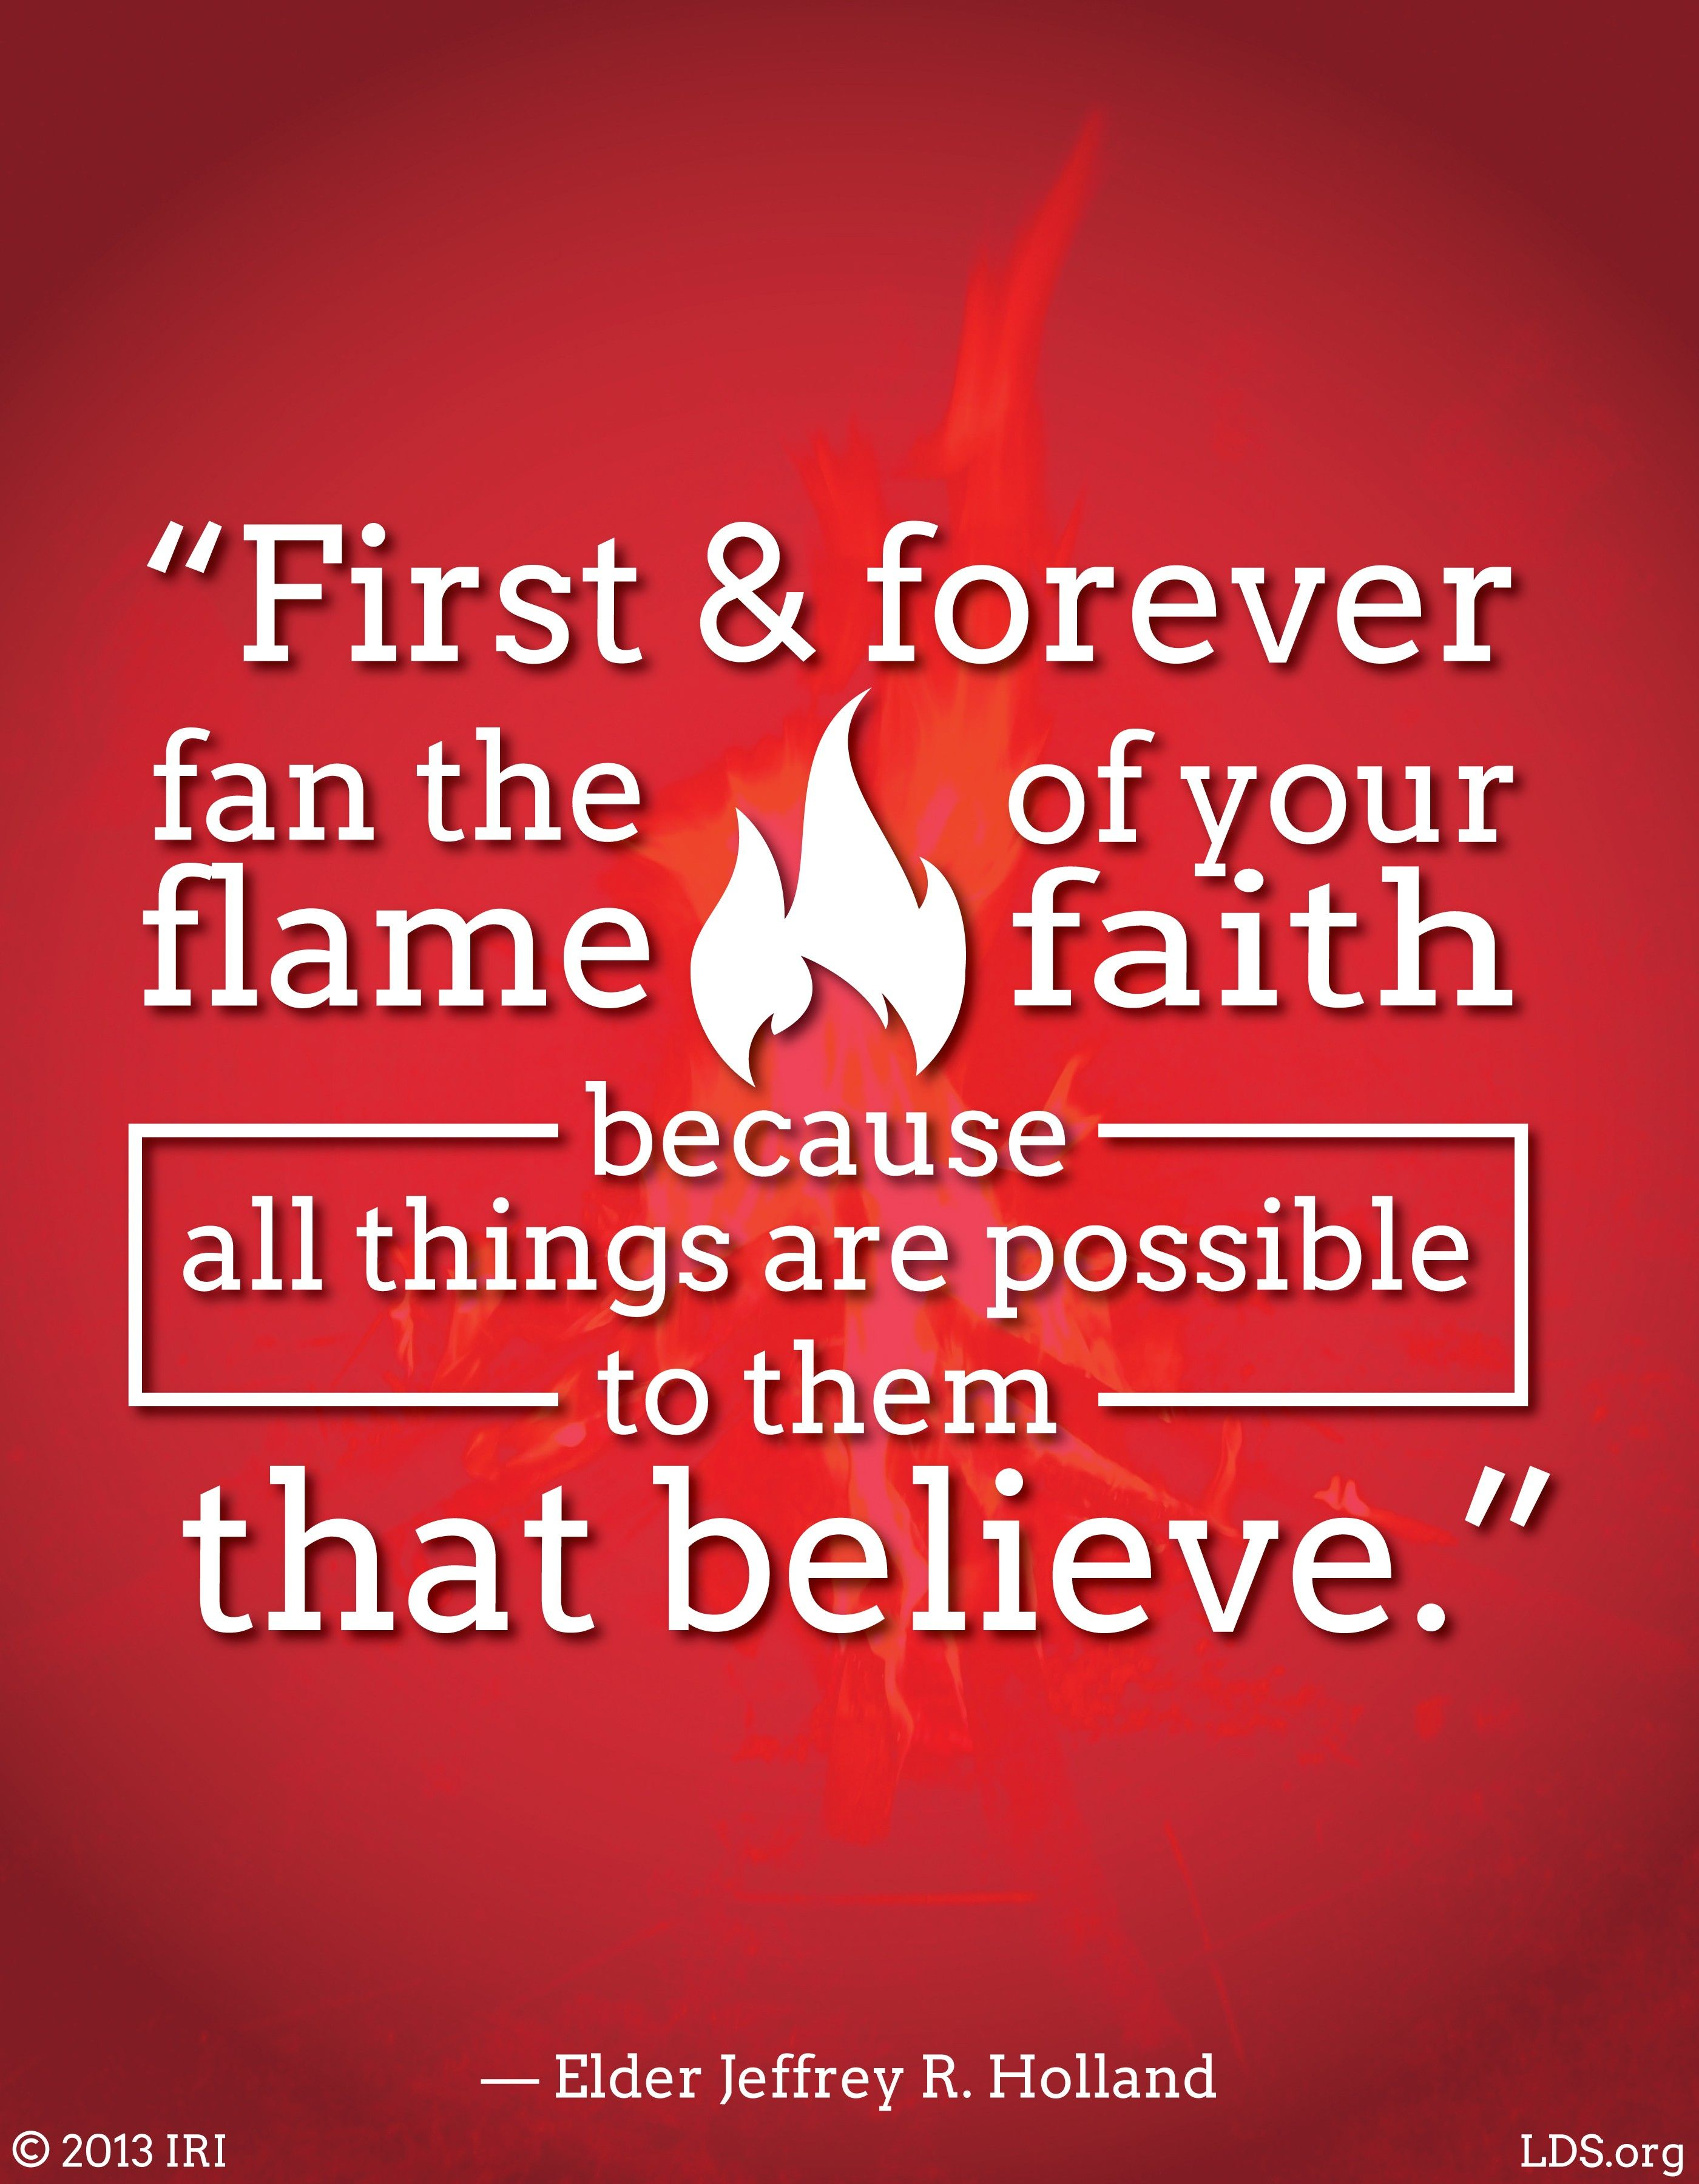 """""""First and forever fan the flame of your faith, because all things are possible to them that believe.""""—Elder Jeffrey R. Holland, """"Lord, I Believe"""""""